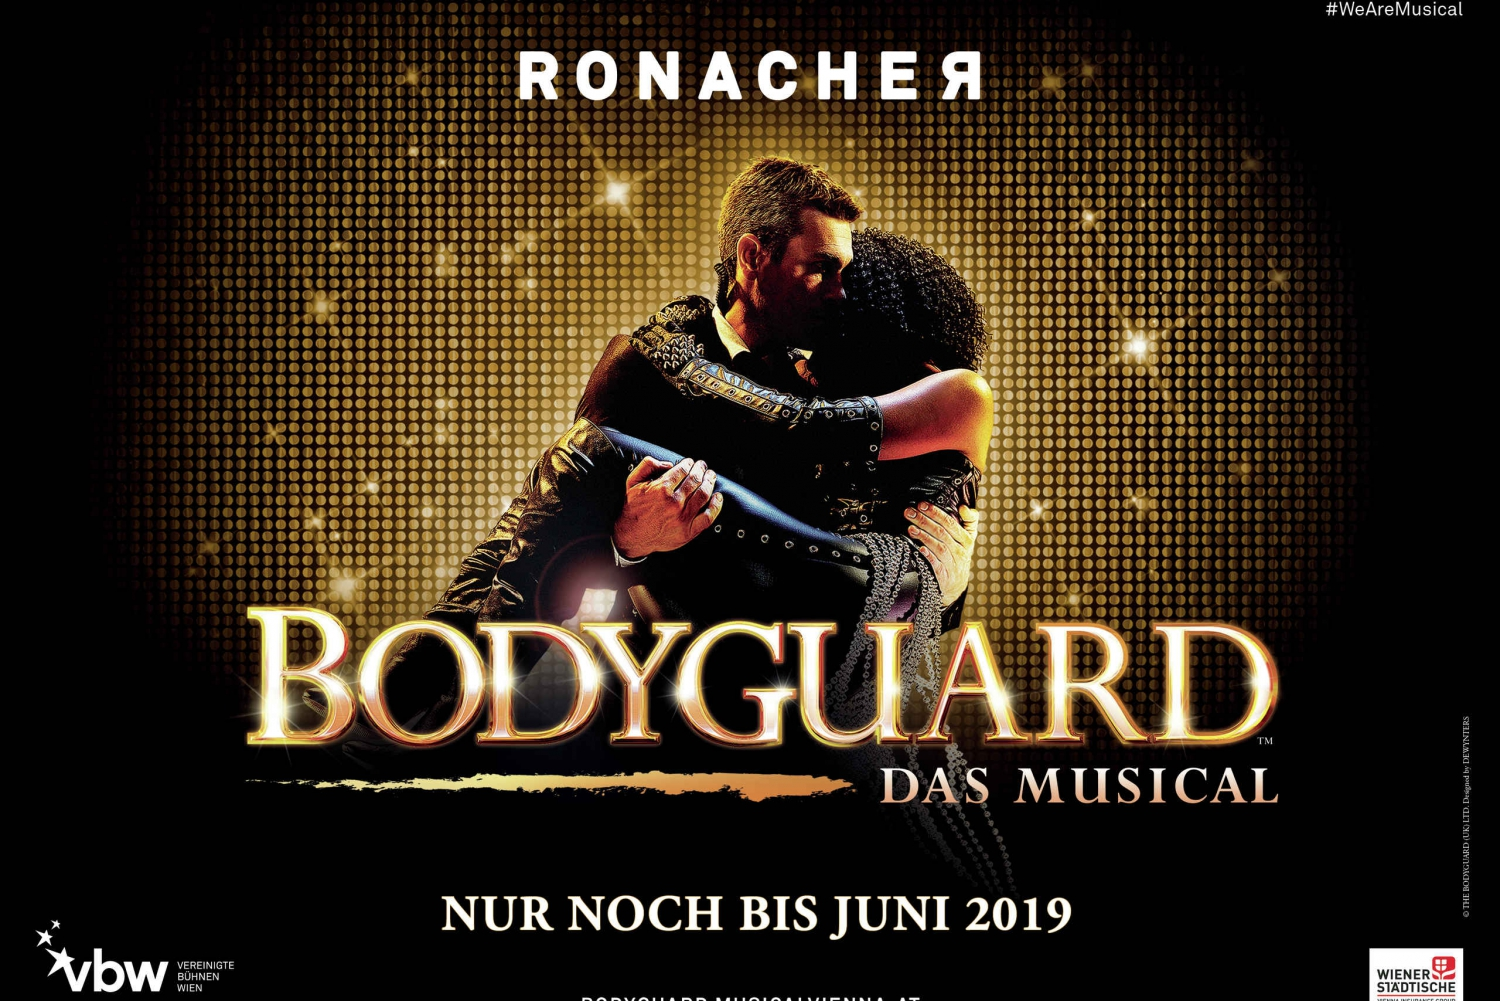 Ticket for BodyGuard - The Musical at Ronacher